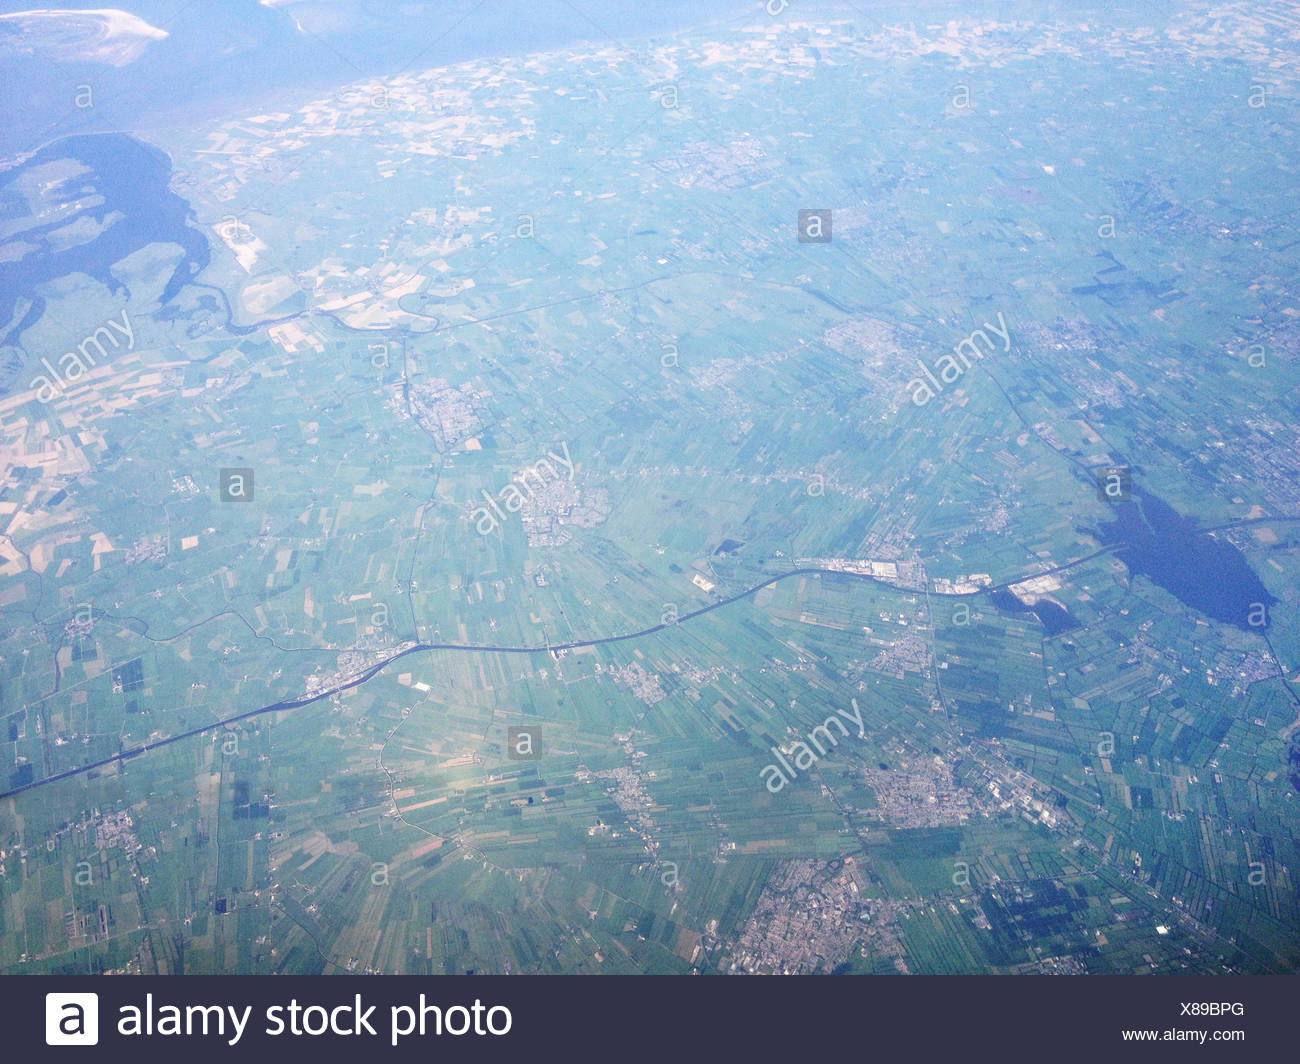 Denmark Agricultural Land From Above - Stock Image